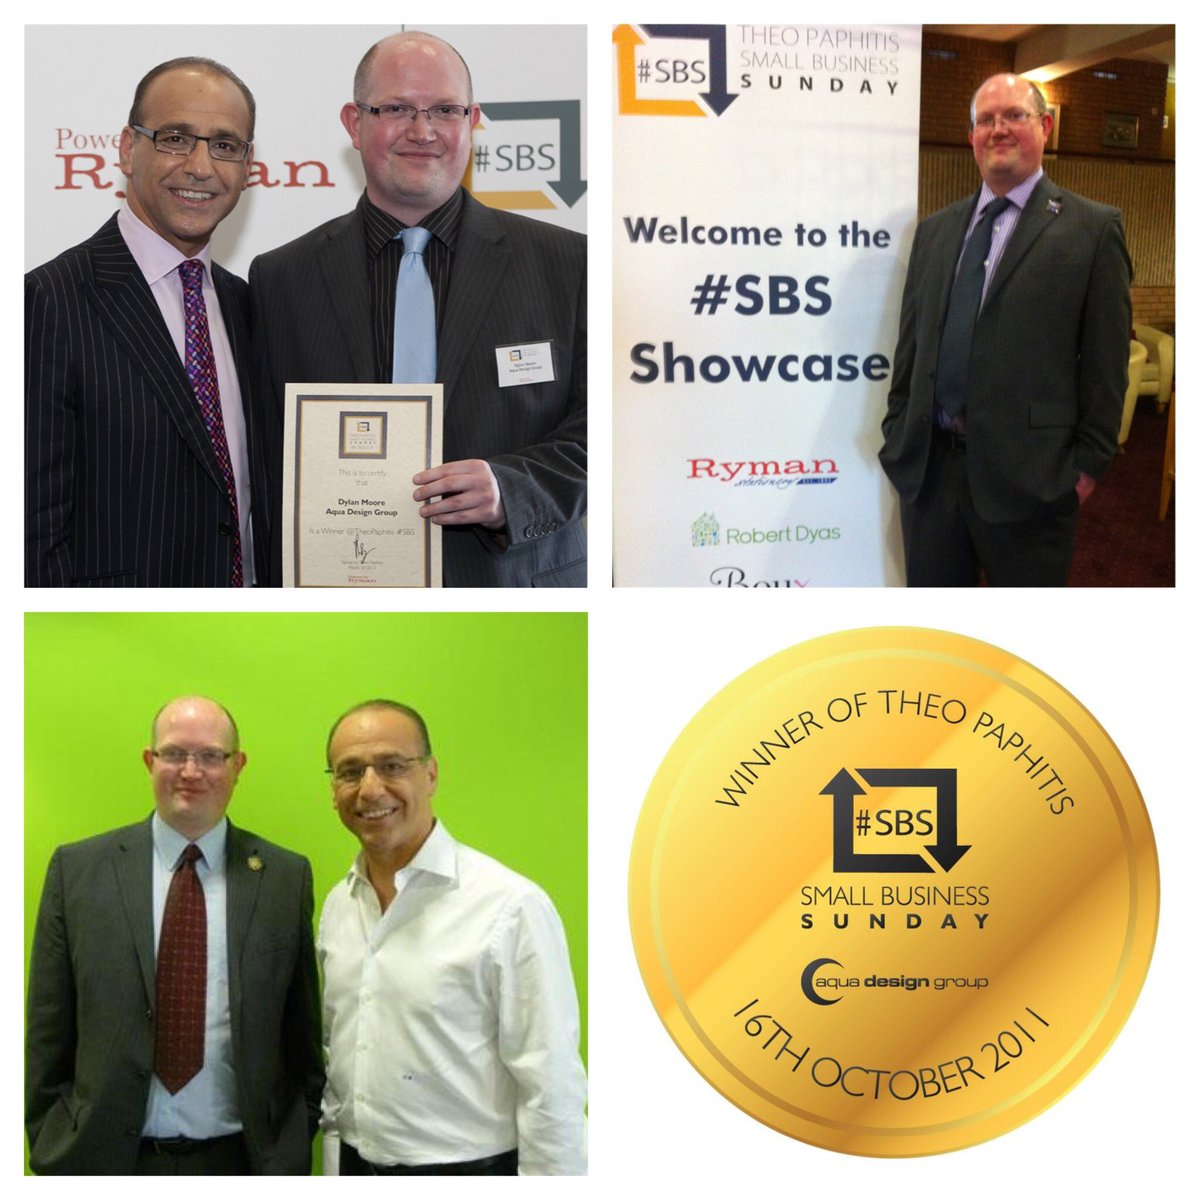 Give your #SmallBusiness a weekend showcase with @TheoPaphitis #SBS every Sunday 5-7.30pm.<br>http://pic.twitter.com/YB31ahTmoo